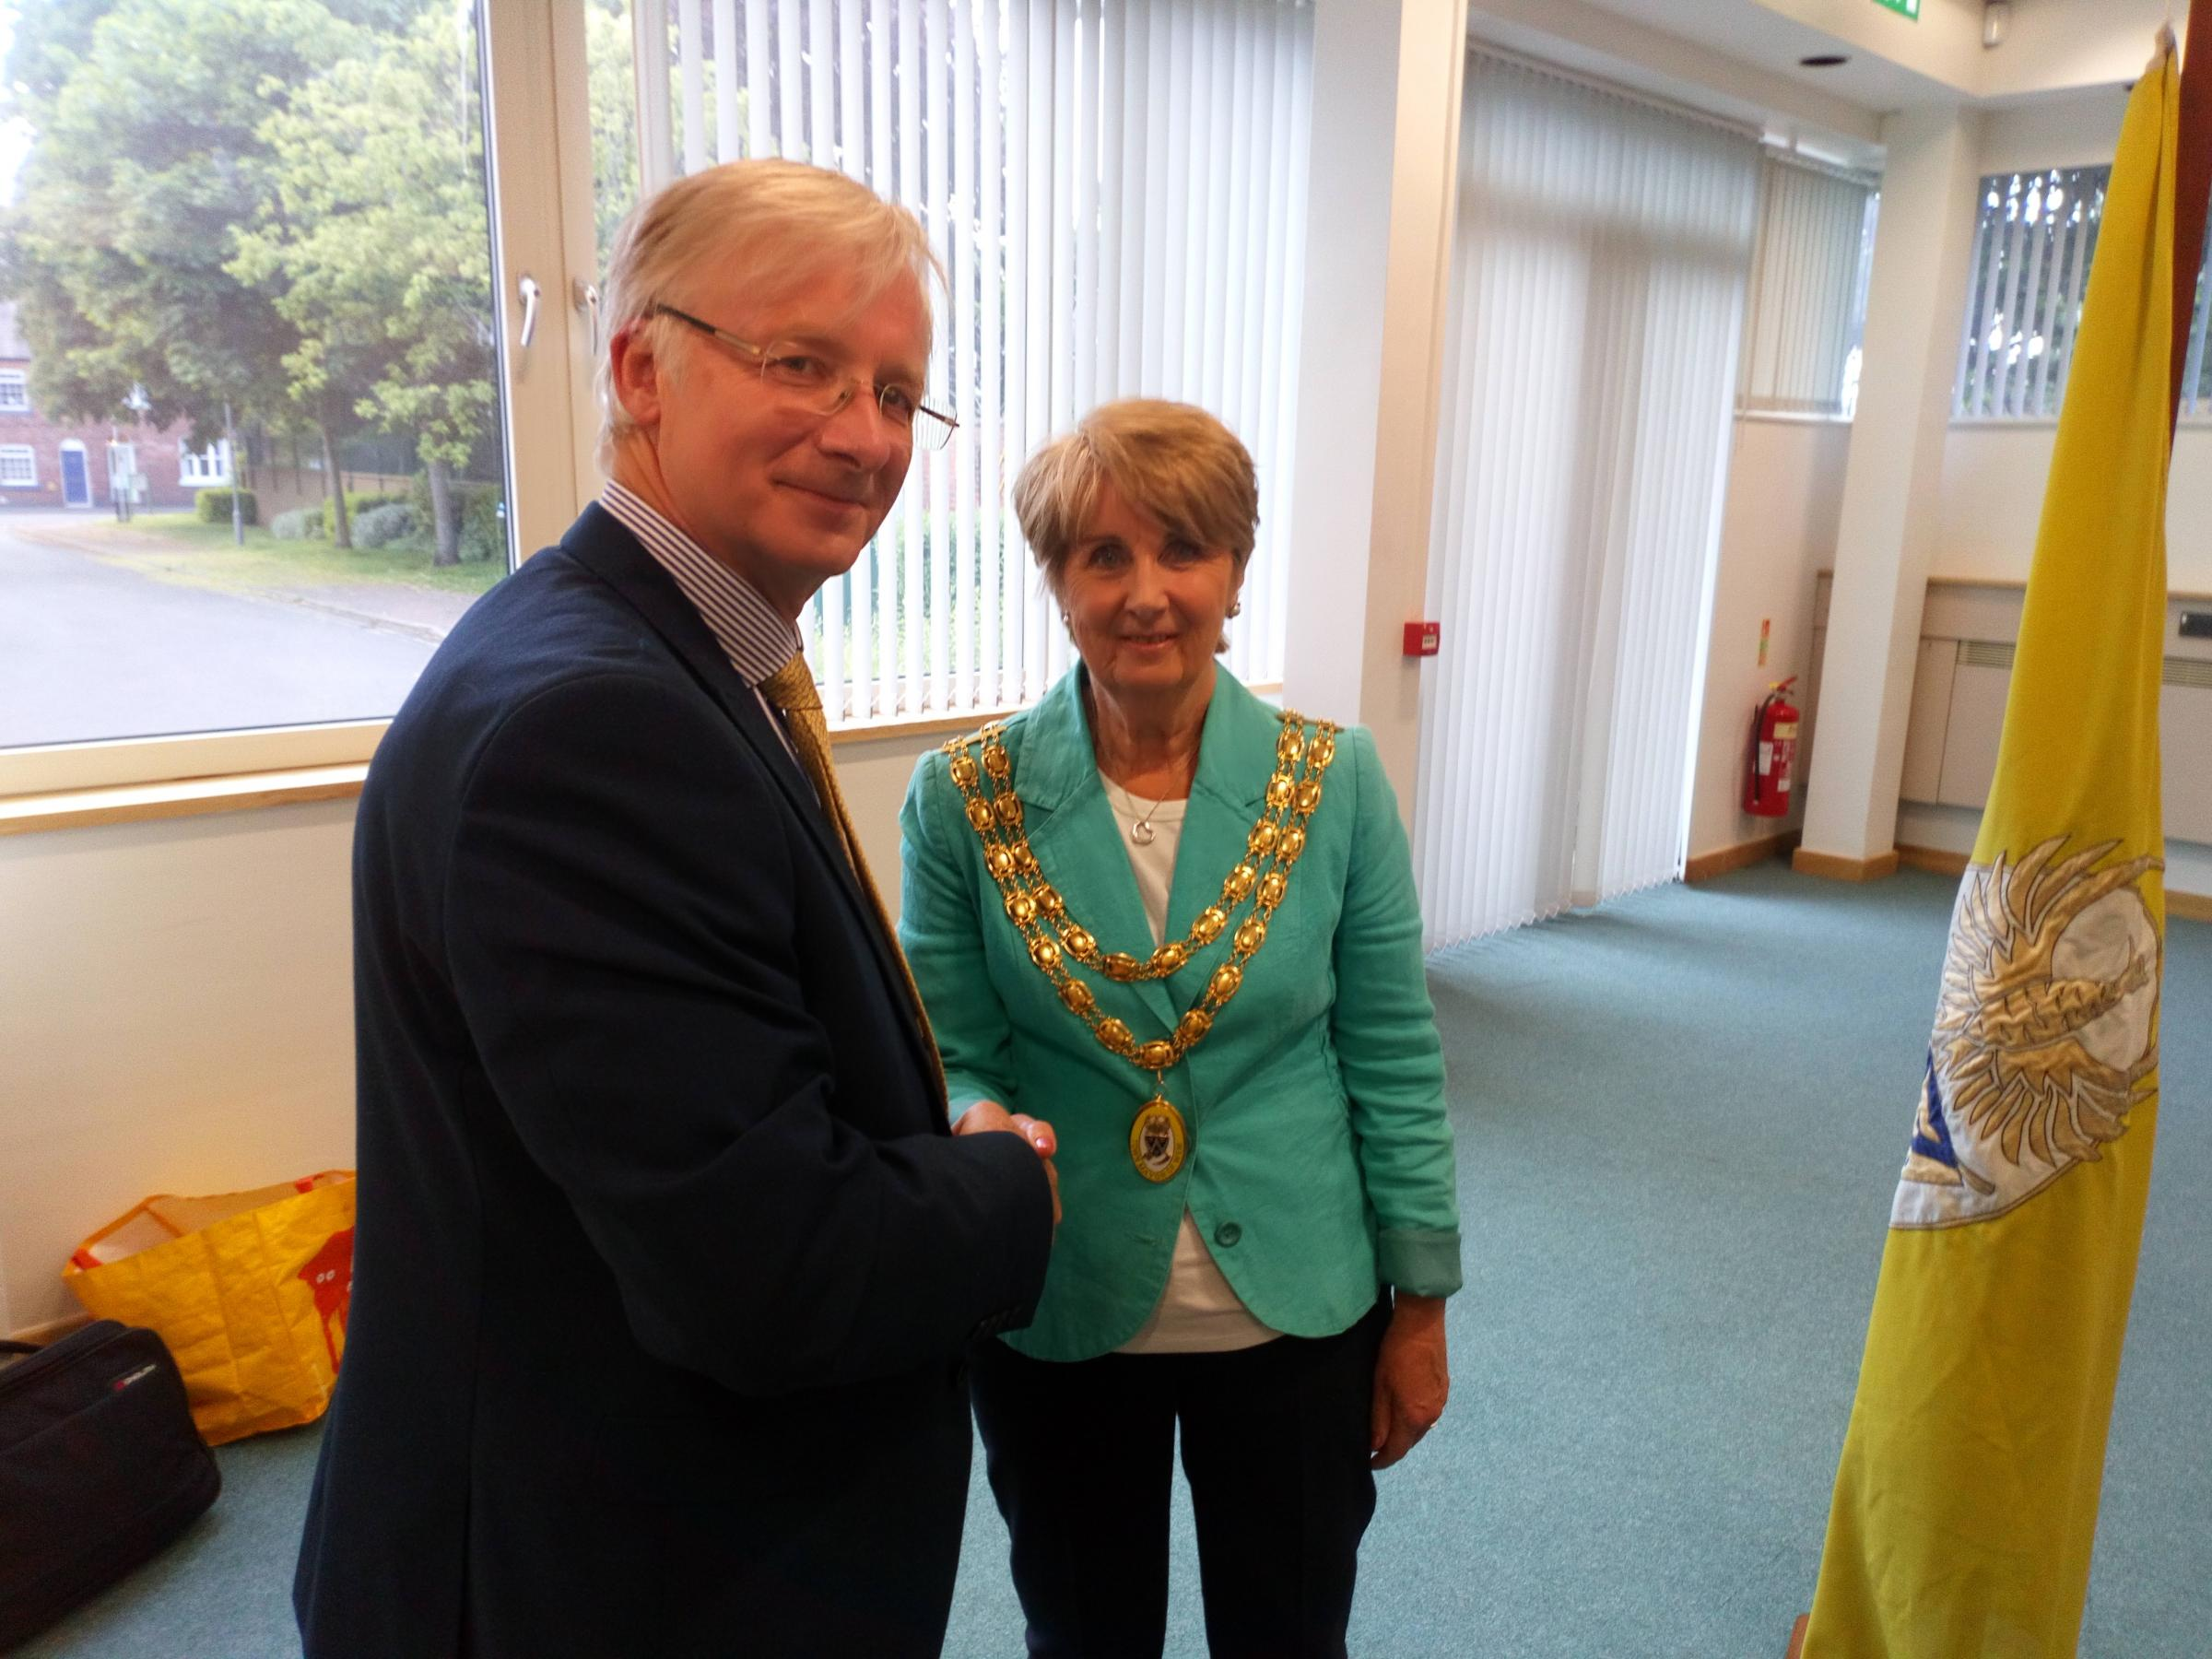 Outgoing mayor of Wem, Cllr Edward Towers, congratluates new incumbent Cllr Connie Granger on her election.